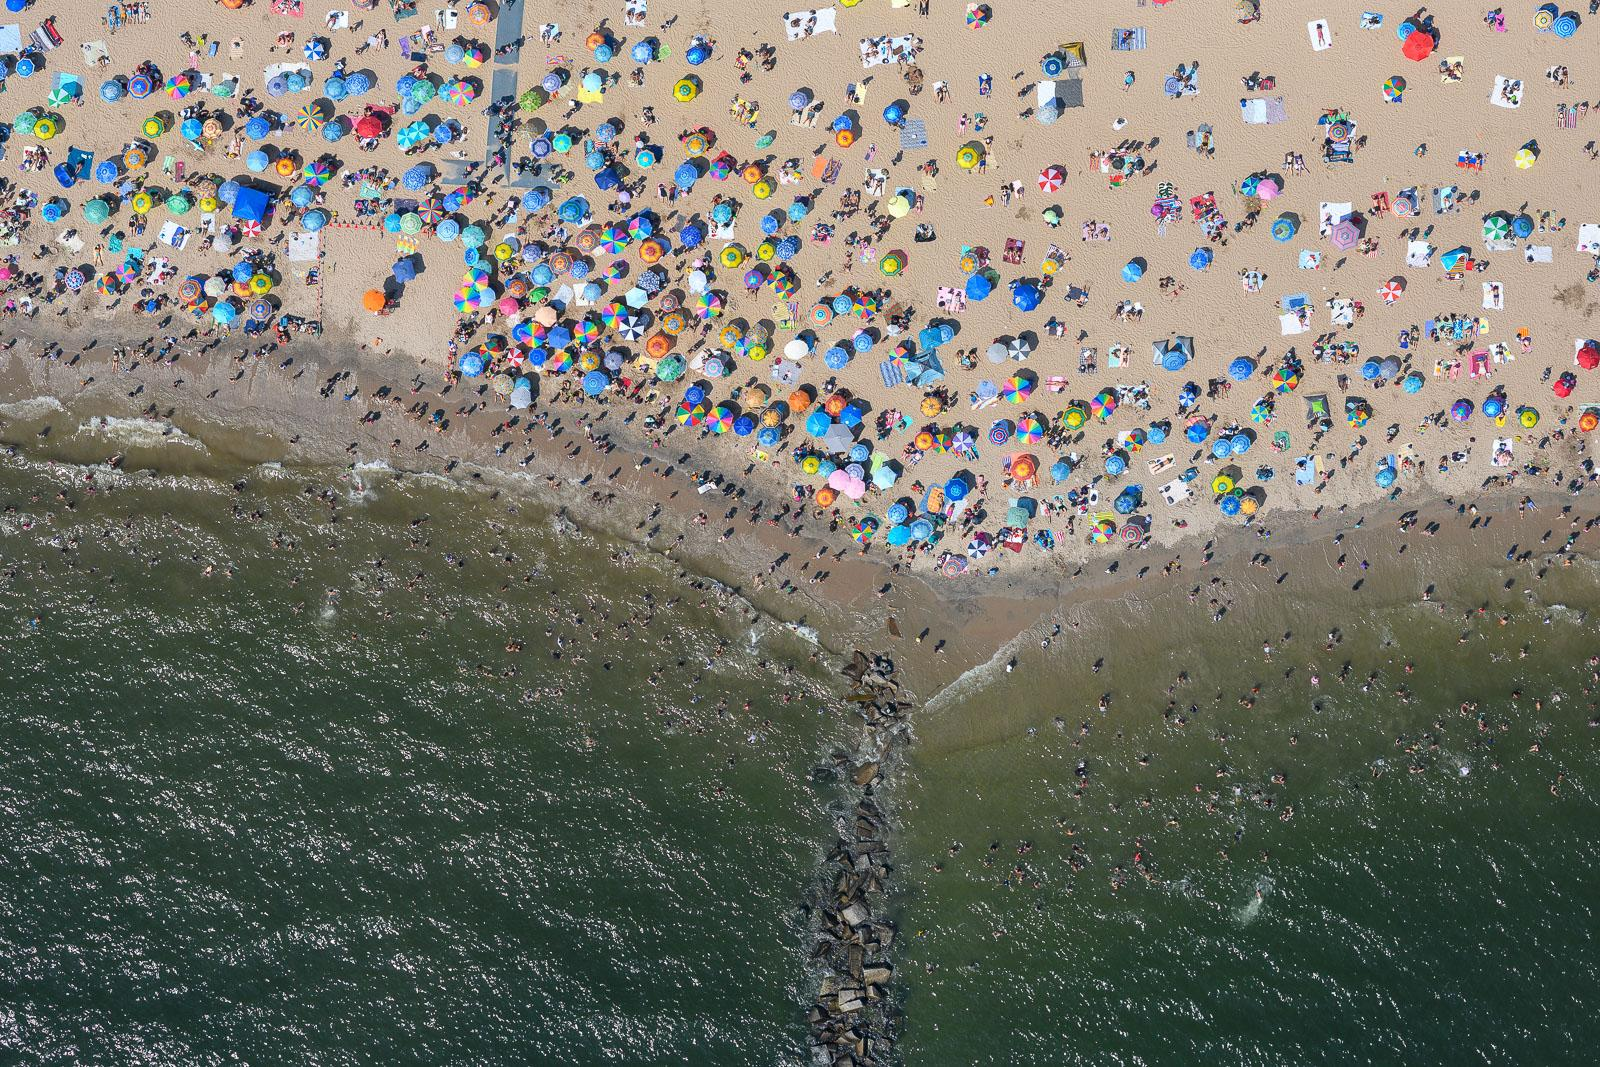 Coney Island's packed beach on Labor Day in 2018